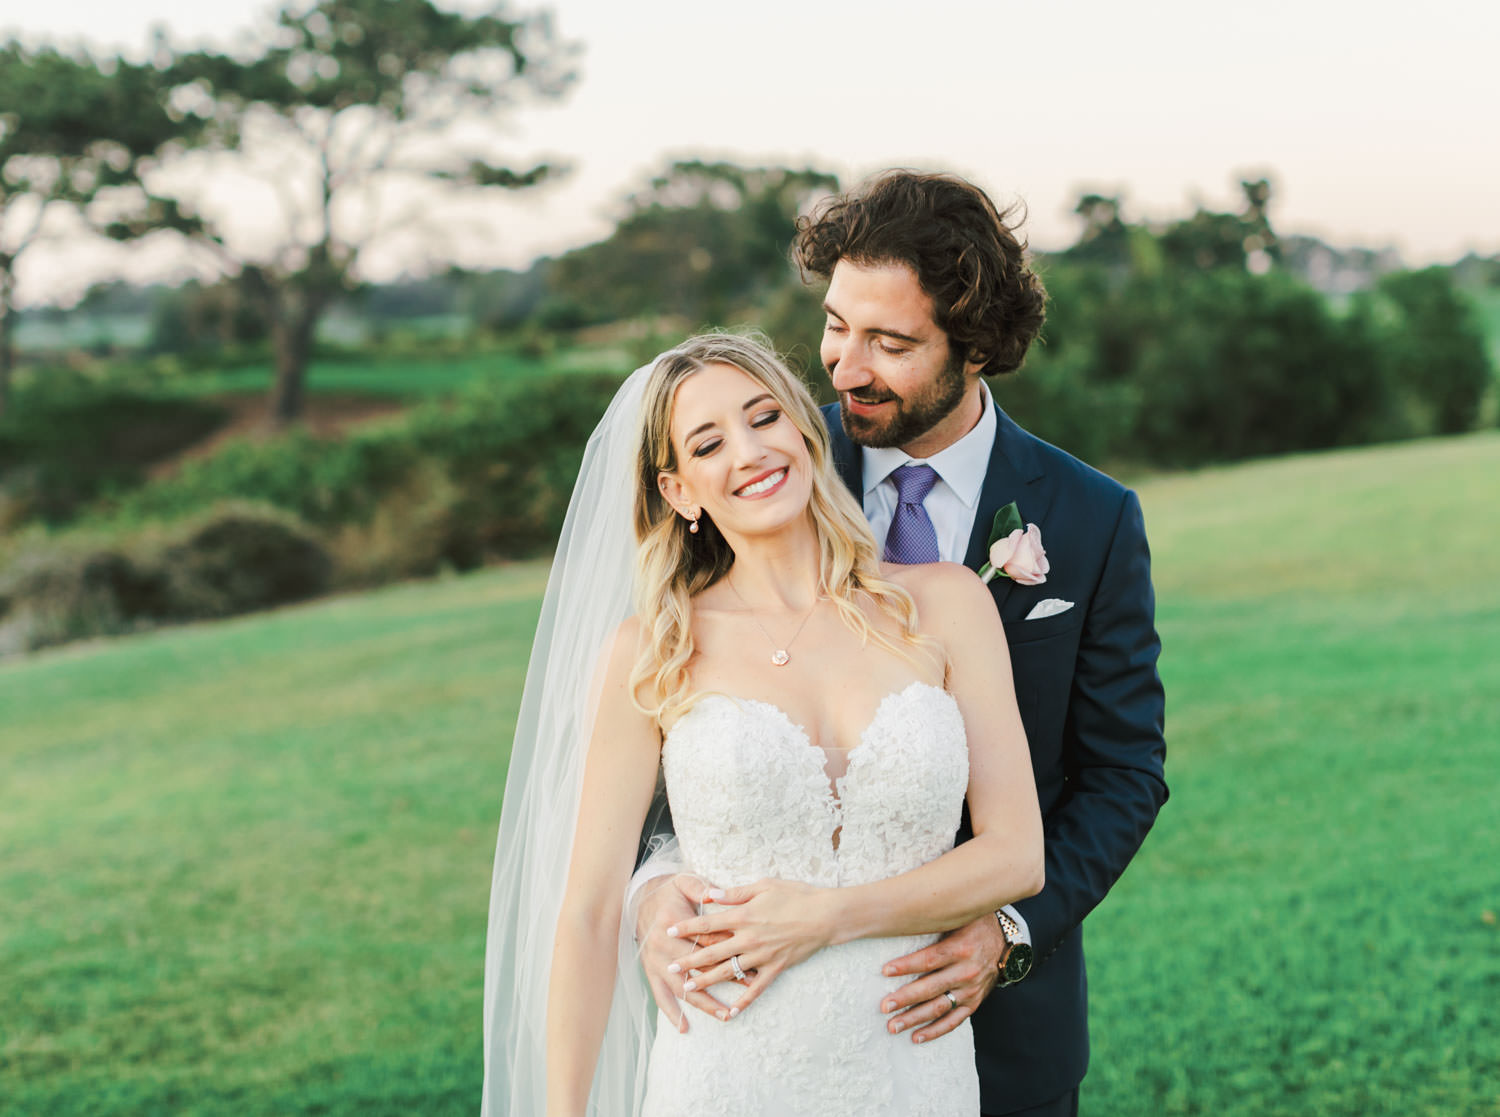 Bride in Pronovias off shoulder lace gown and long train and veil on grassy hill with ocean views with groom in navy suit and rose boutonniere, Lodge at Torrey Pines wedding, photography by Cavin Elizabeth Photography